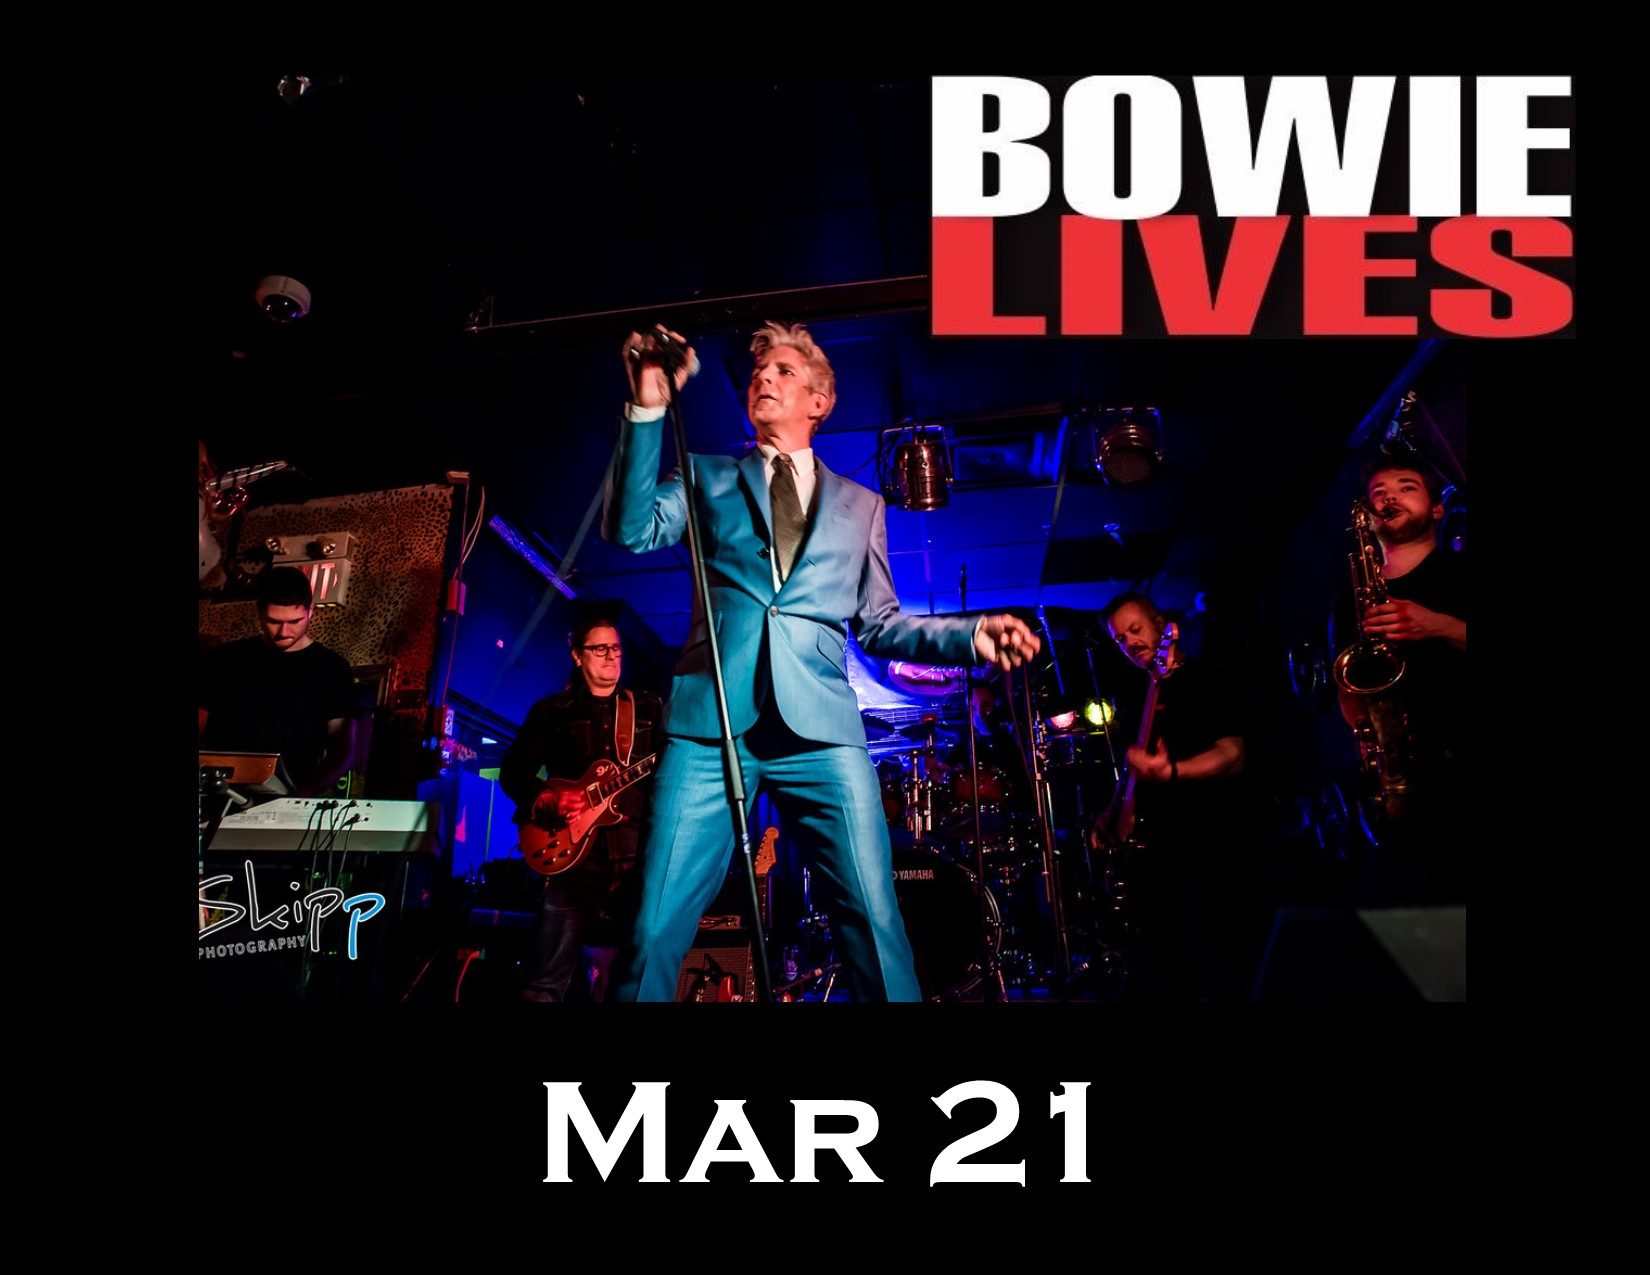 Bowie Lives - The Bowie Experience